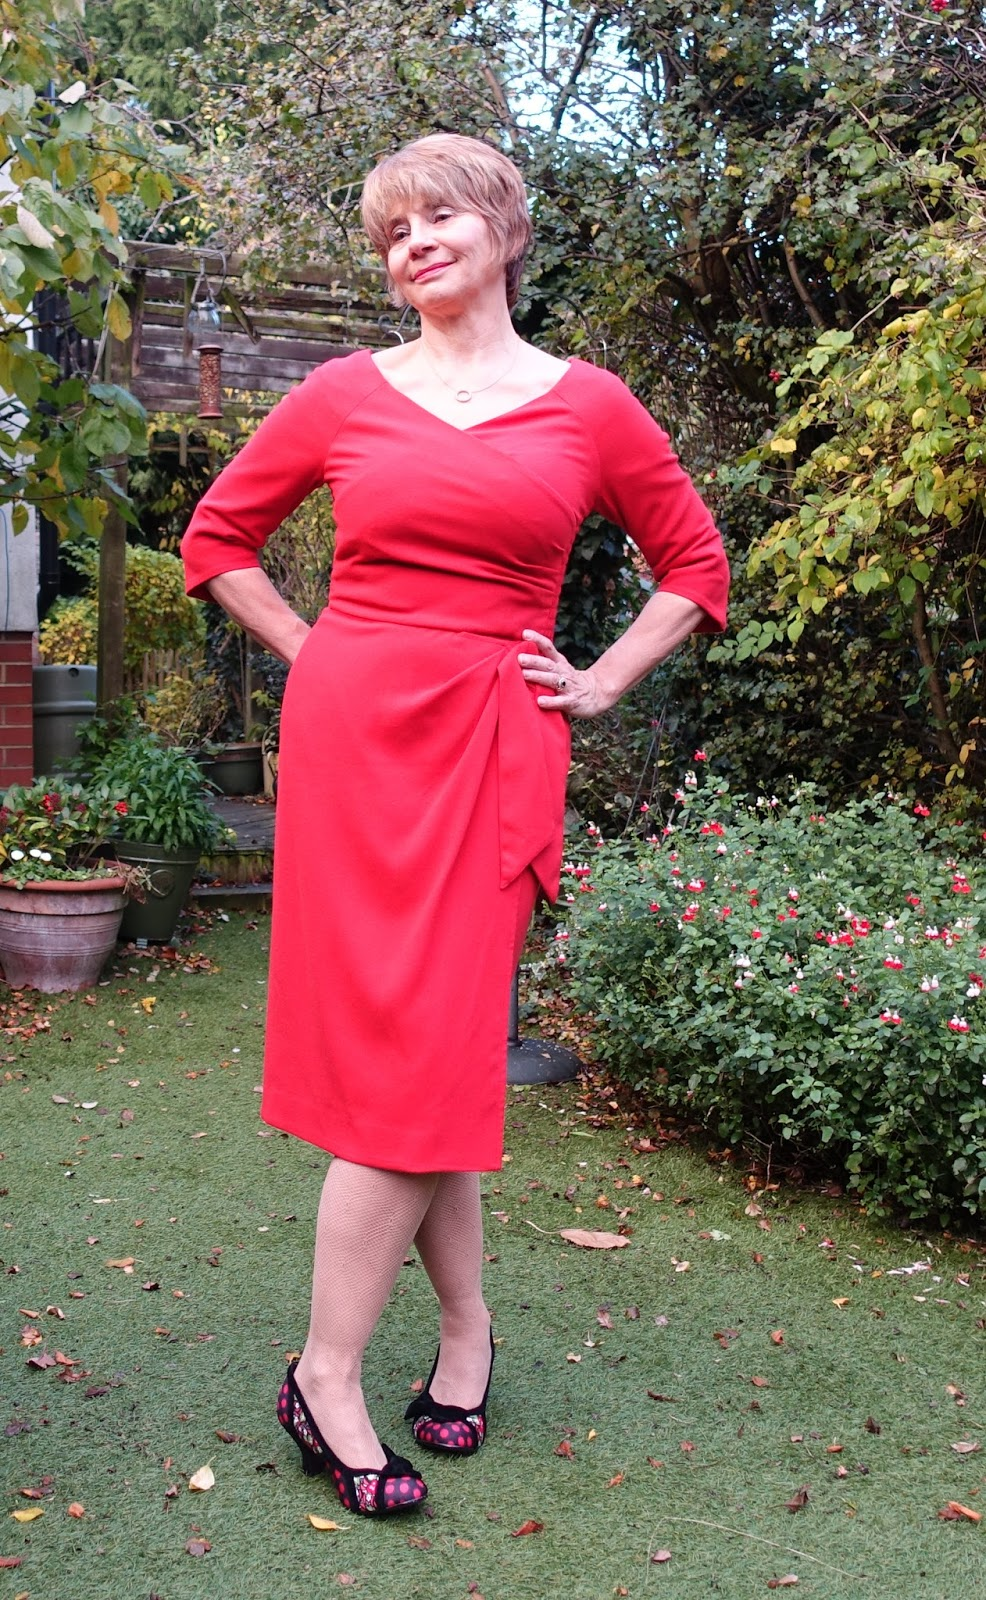 Image showing a 50 plus woman in the garden wearing a red Bombshell dress